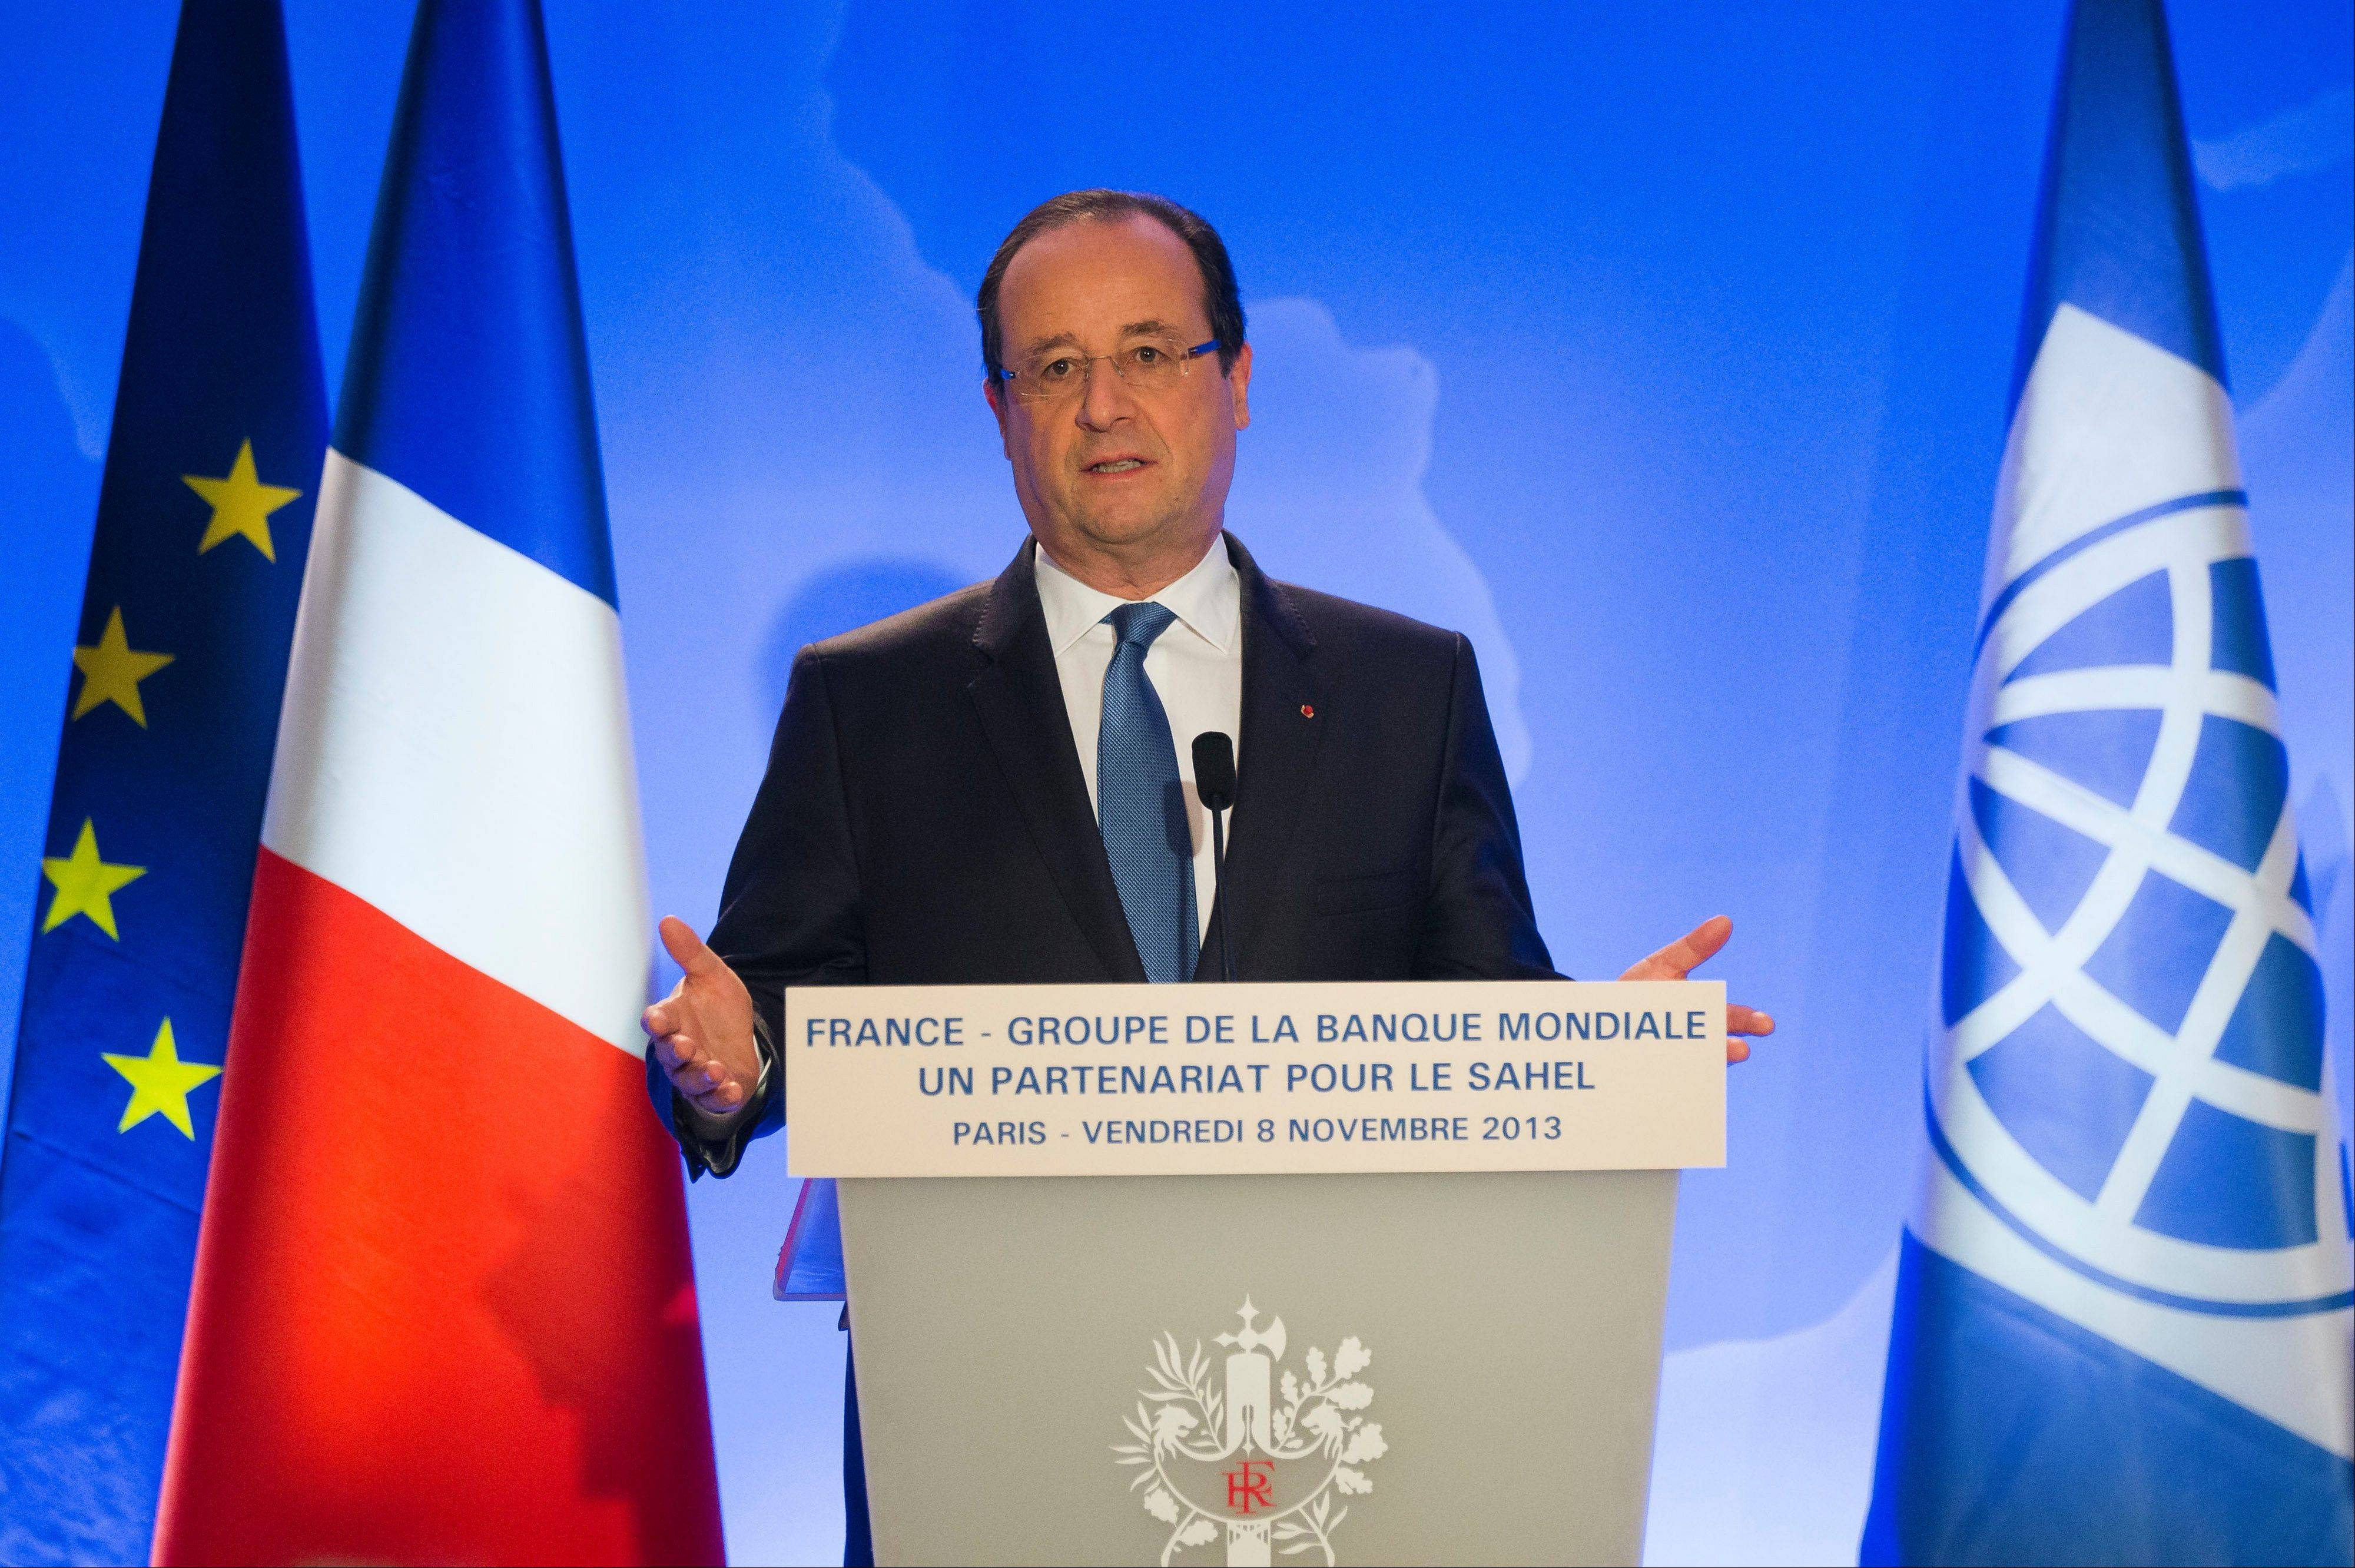 French President Francois Hollande, gestures as he speaks to the media during a press conference at the World Bank Paris Office in Paris Friday. When Iran appeared close to a preliminary deal with world powers over its nuclear program this weekend, France stepped up to say not so fast.